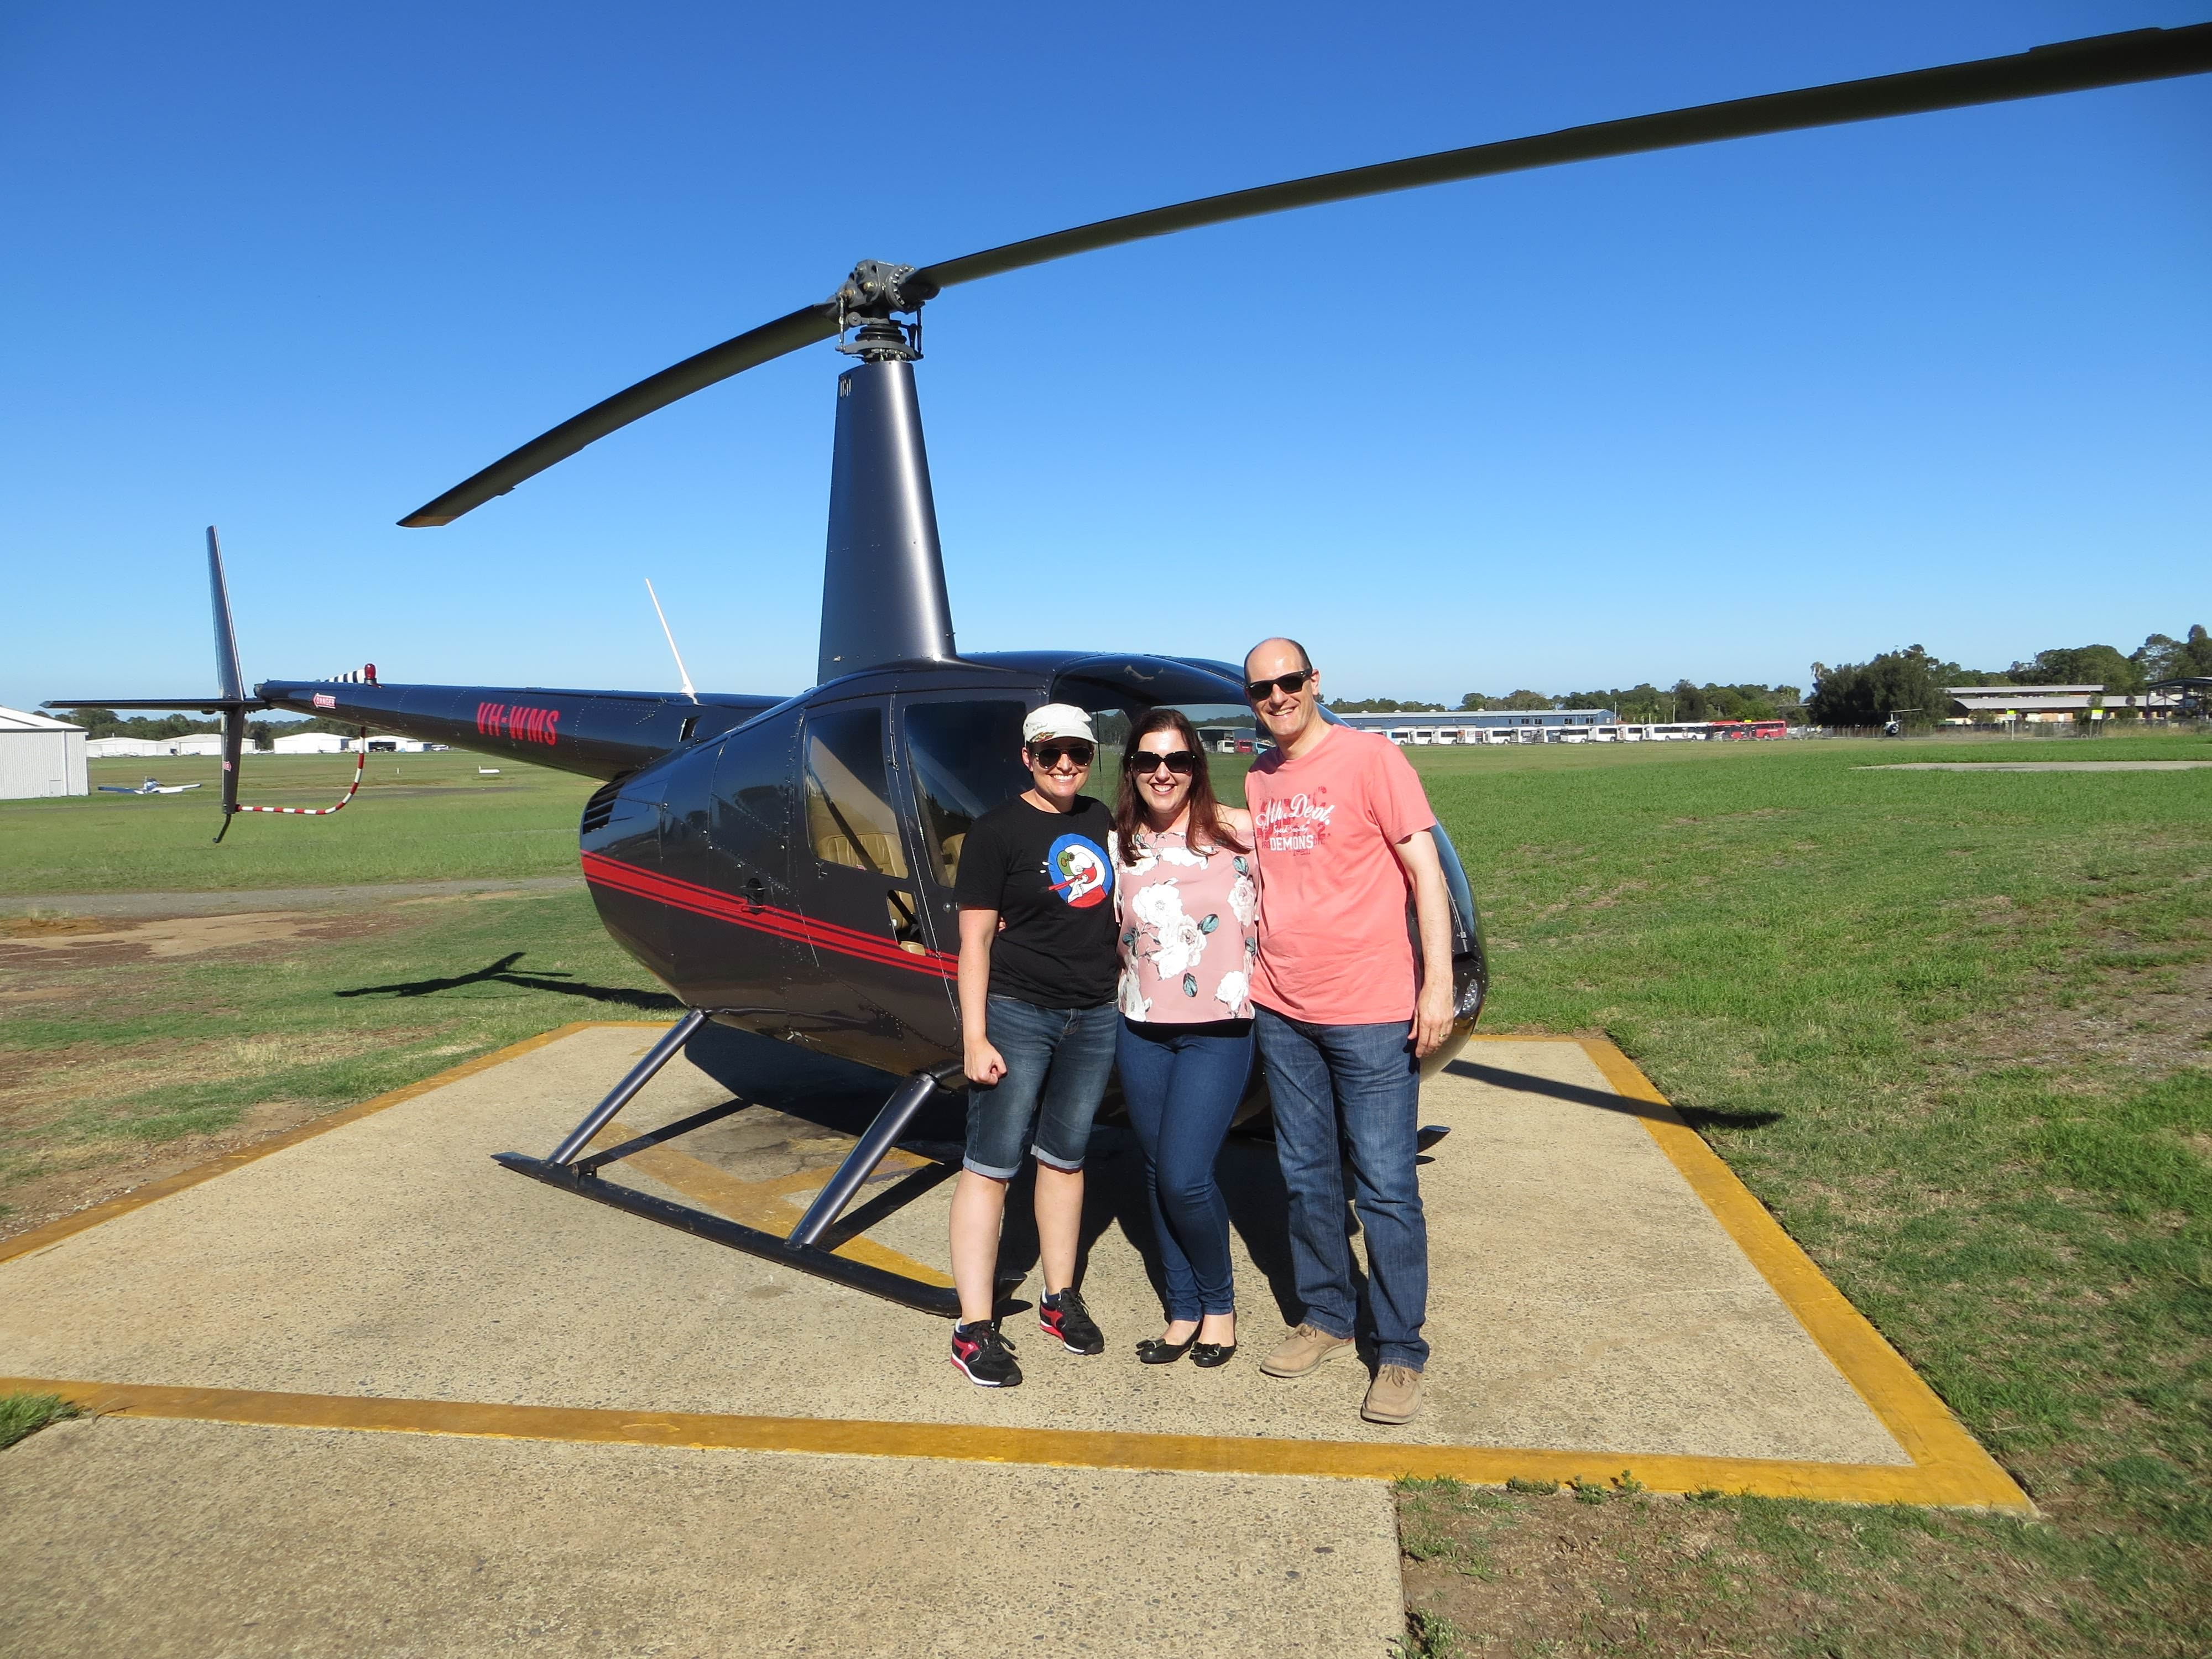 Liane, Max and Filita infront of the Helicopter